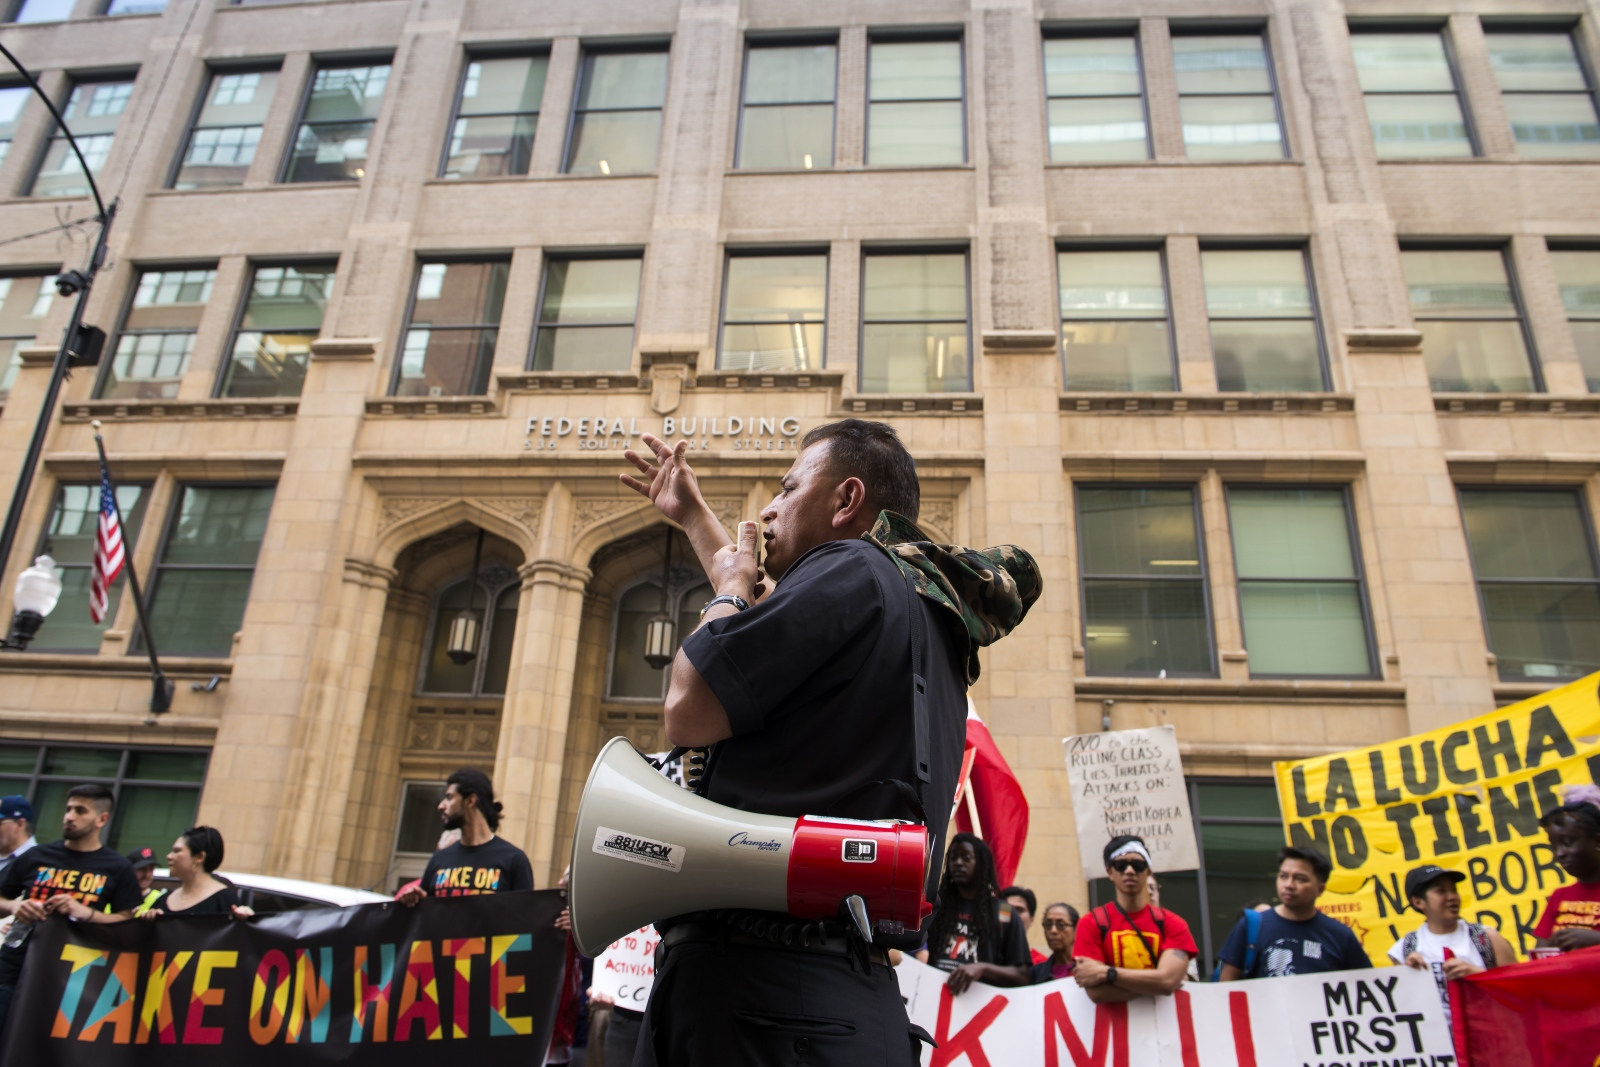 Photography image - 5.01.2018 - Chicago May Day rally began at the Haymarket memorial and  ended in front of I.C.E. building